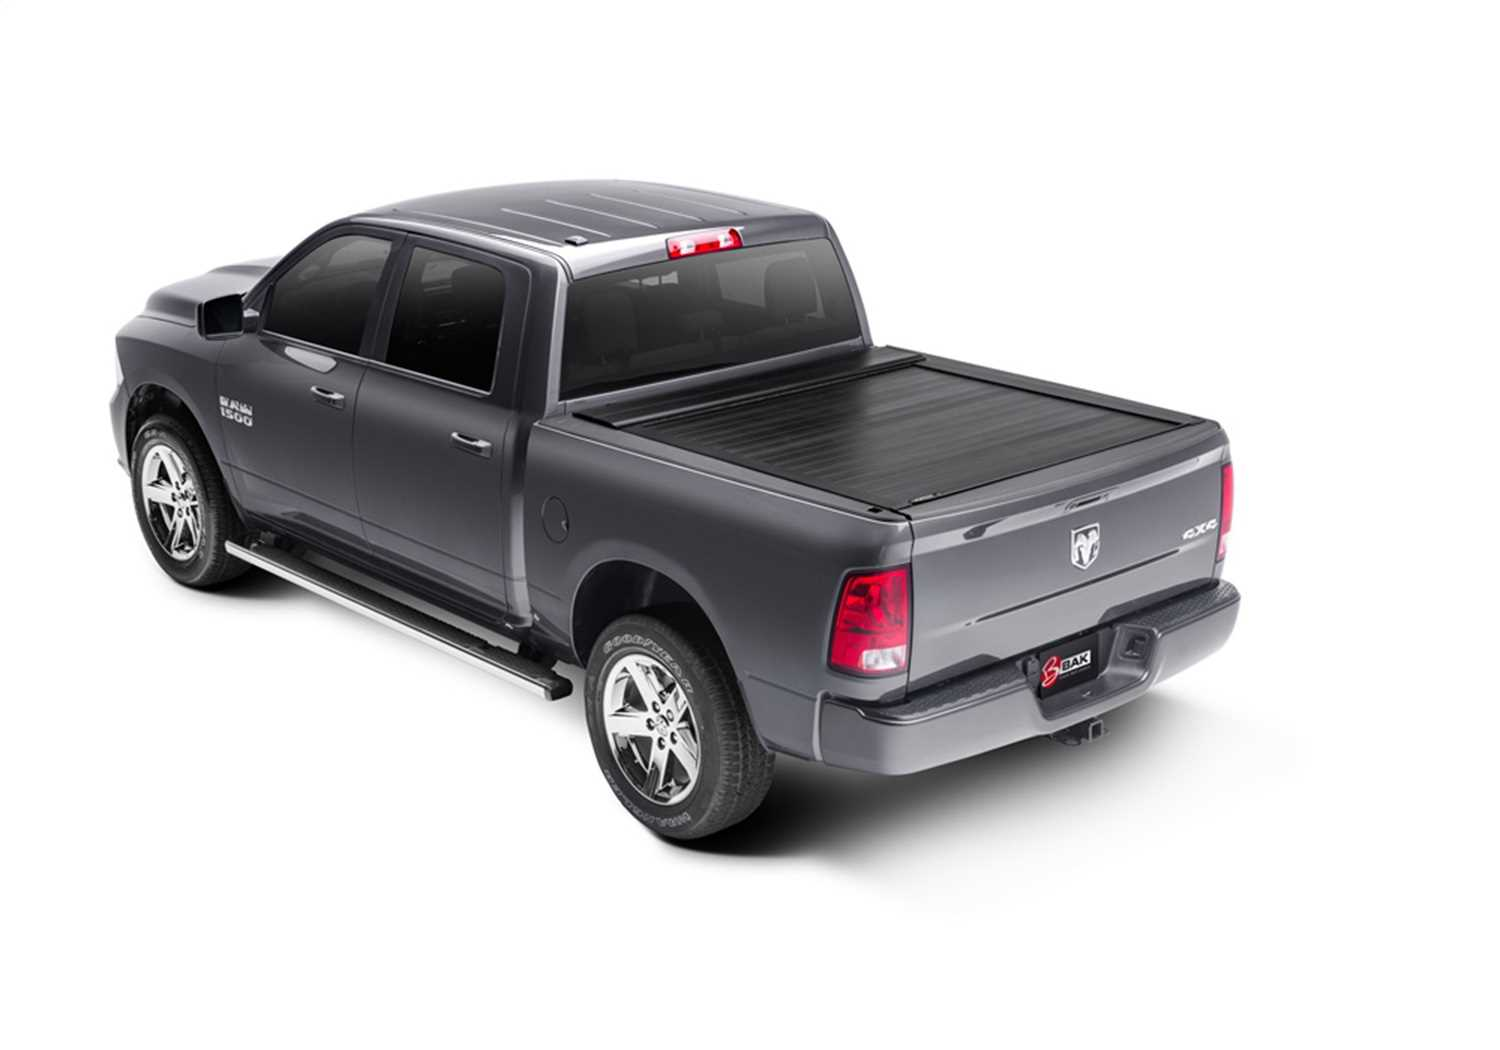 R25130 Bak Industries Vortrak Retractable Truck Bed Cover